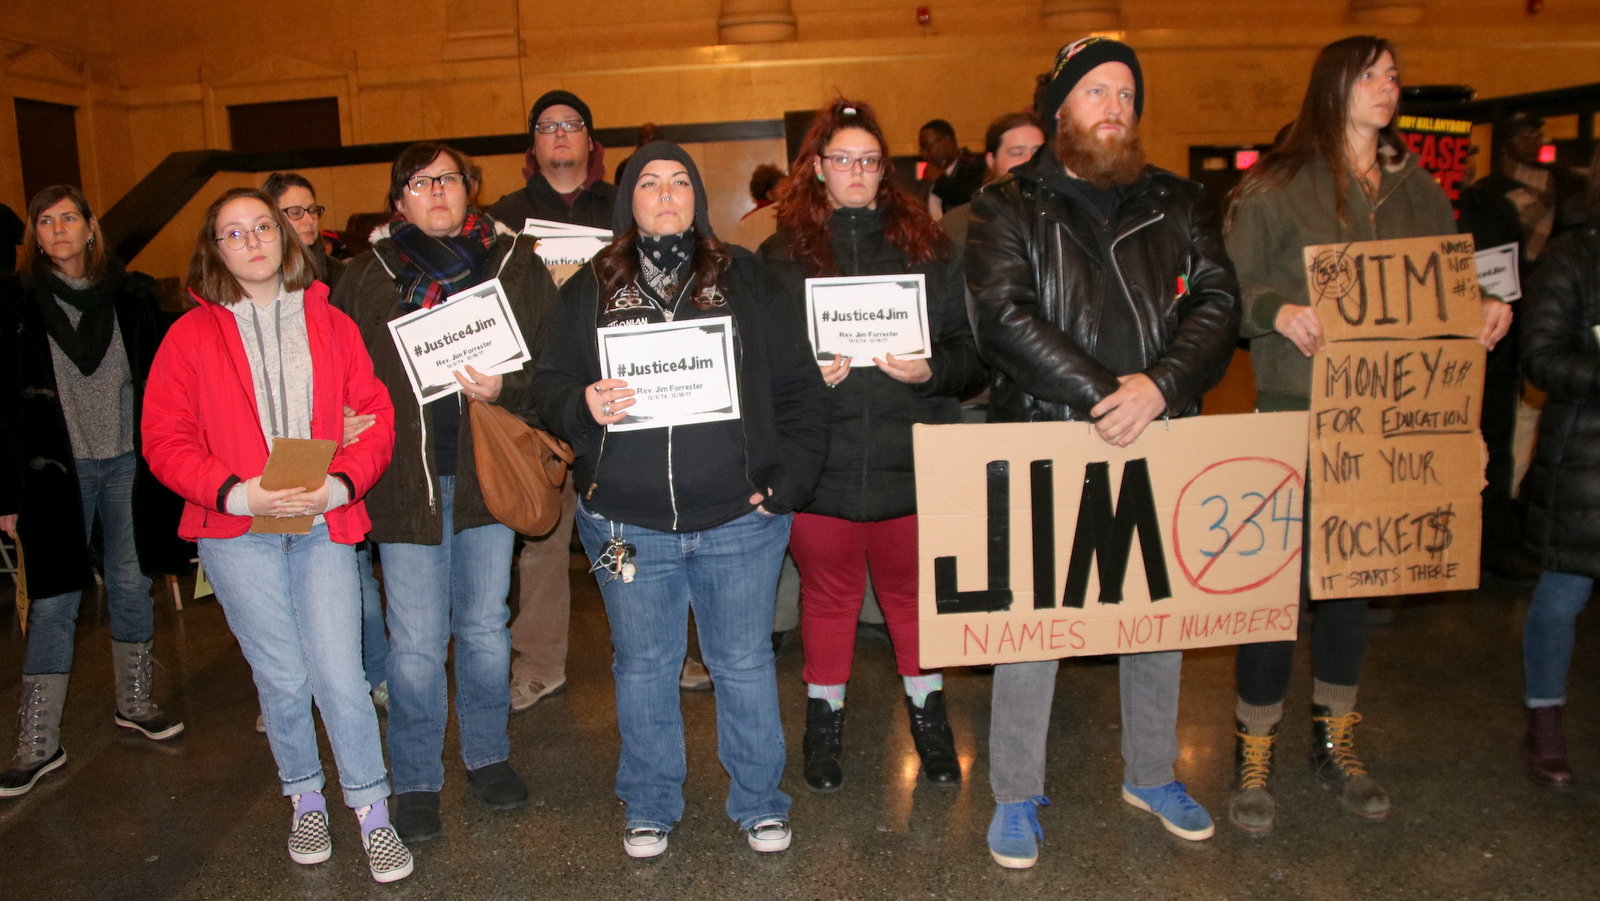 Several participants in Mayor Pugh's candlelight vigil came to remember slain musician Jim Forrester. (Fern Shen)